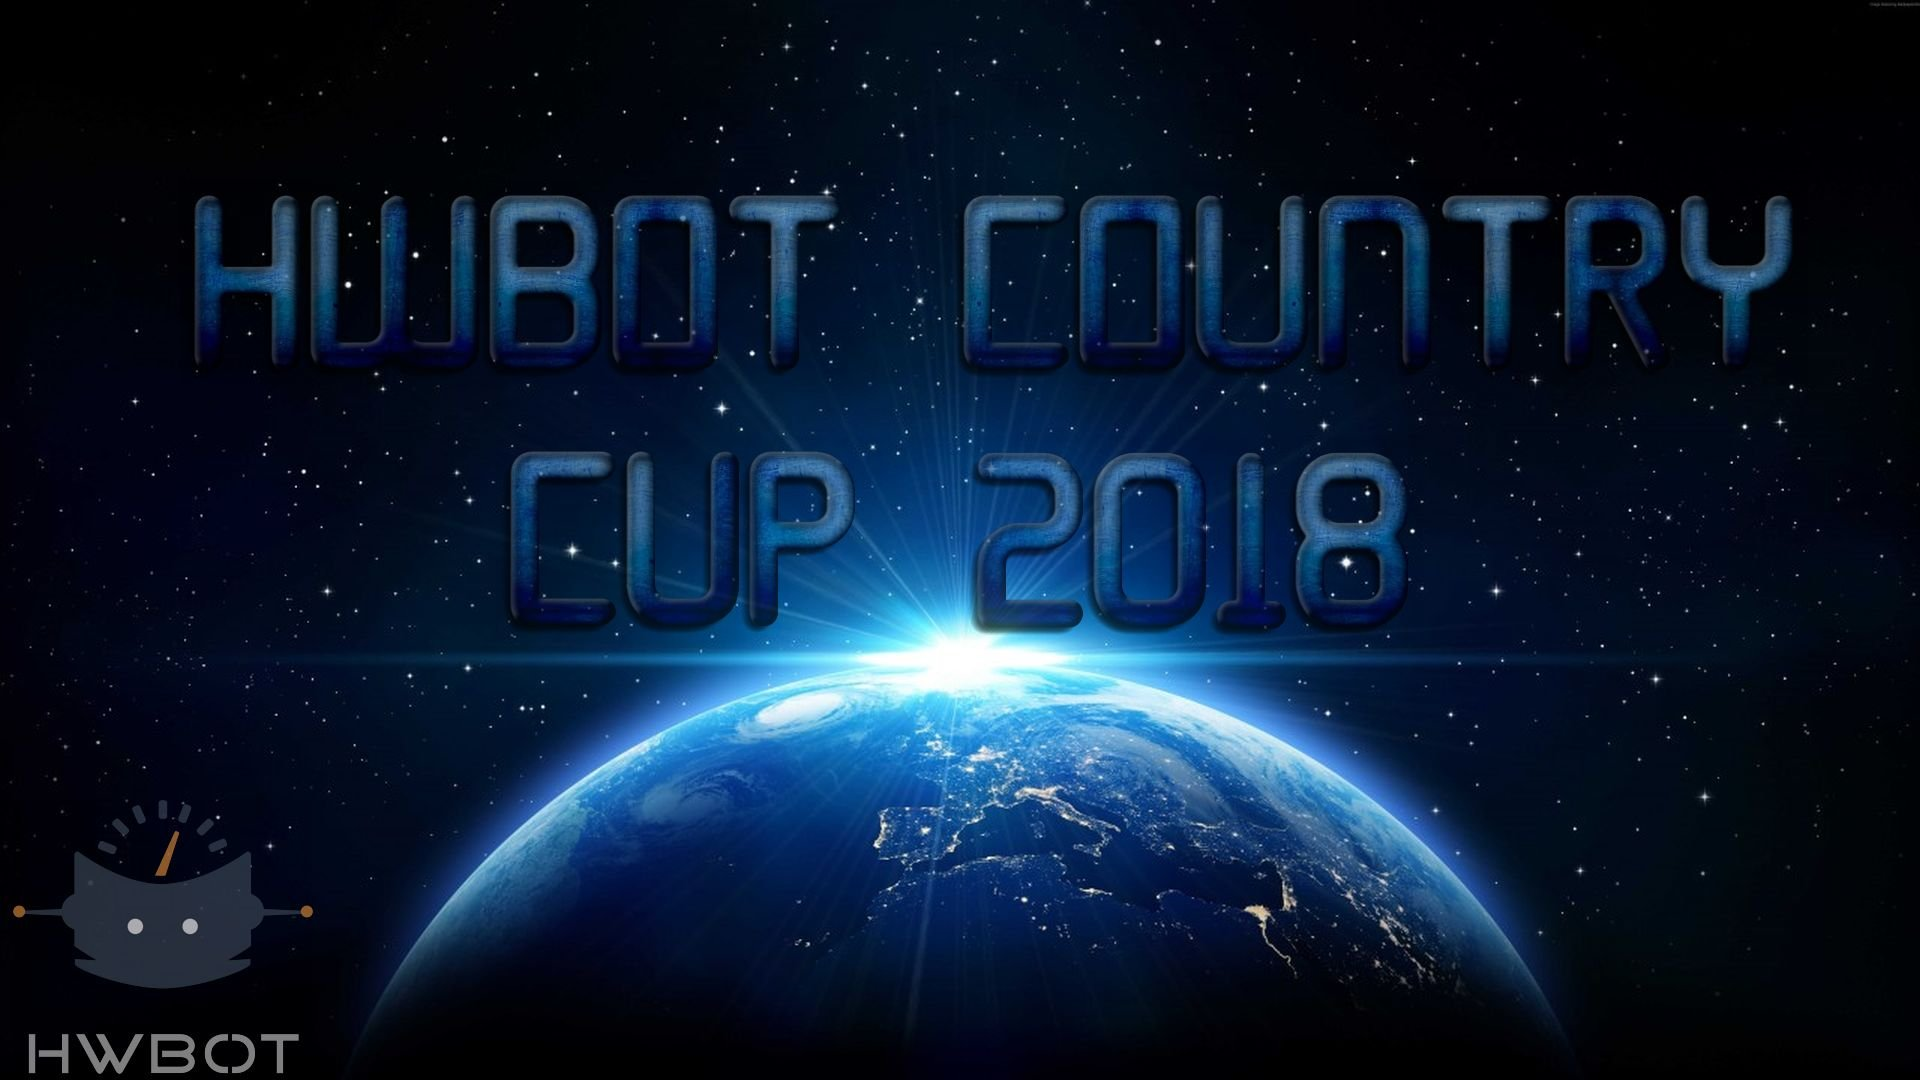 COUNTRYCUP2